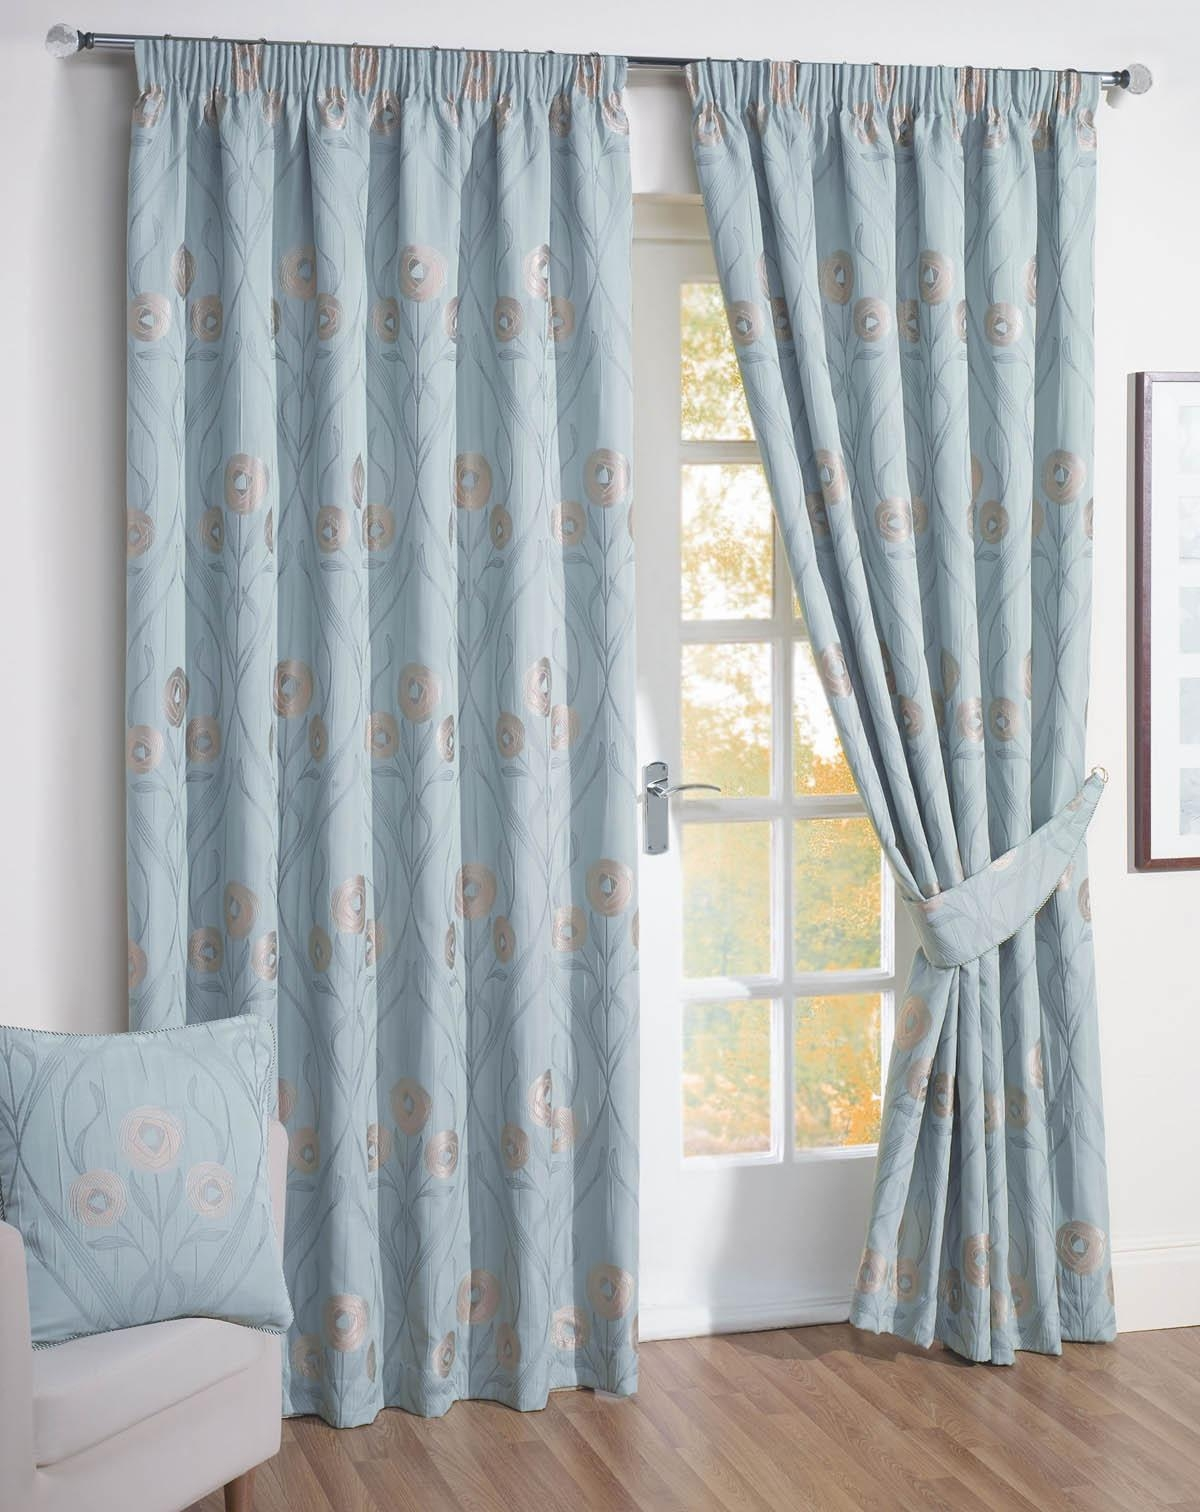 Thick Curtains Affordable Curtains Available Terrys Fabrics Throughout Ready Made Curtains For Large Bay Windows (View 12 of 15)